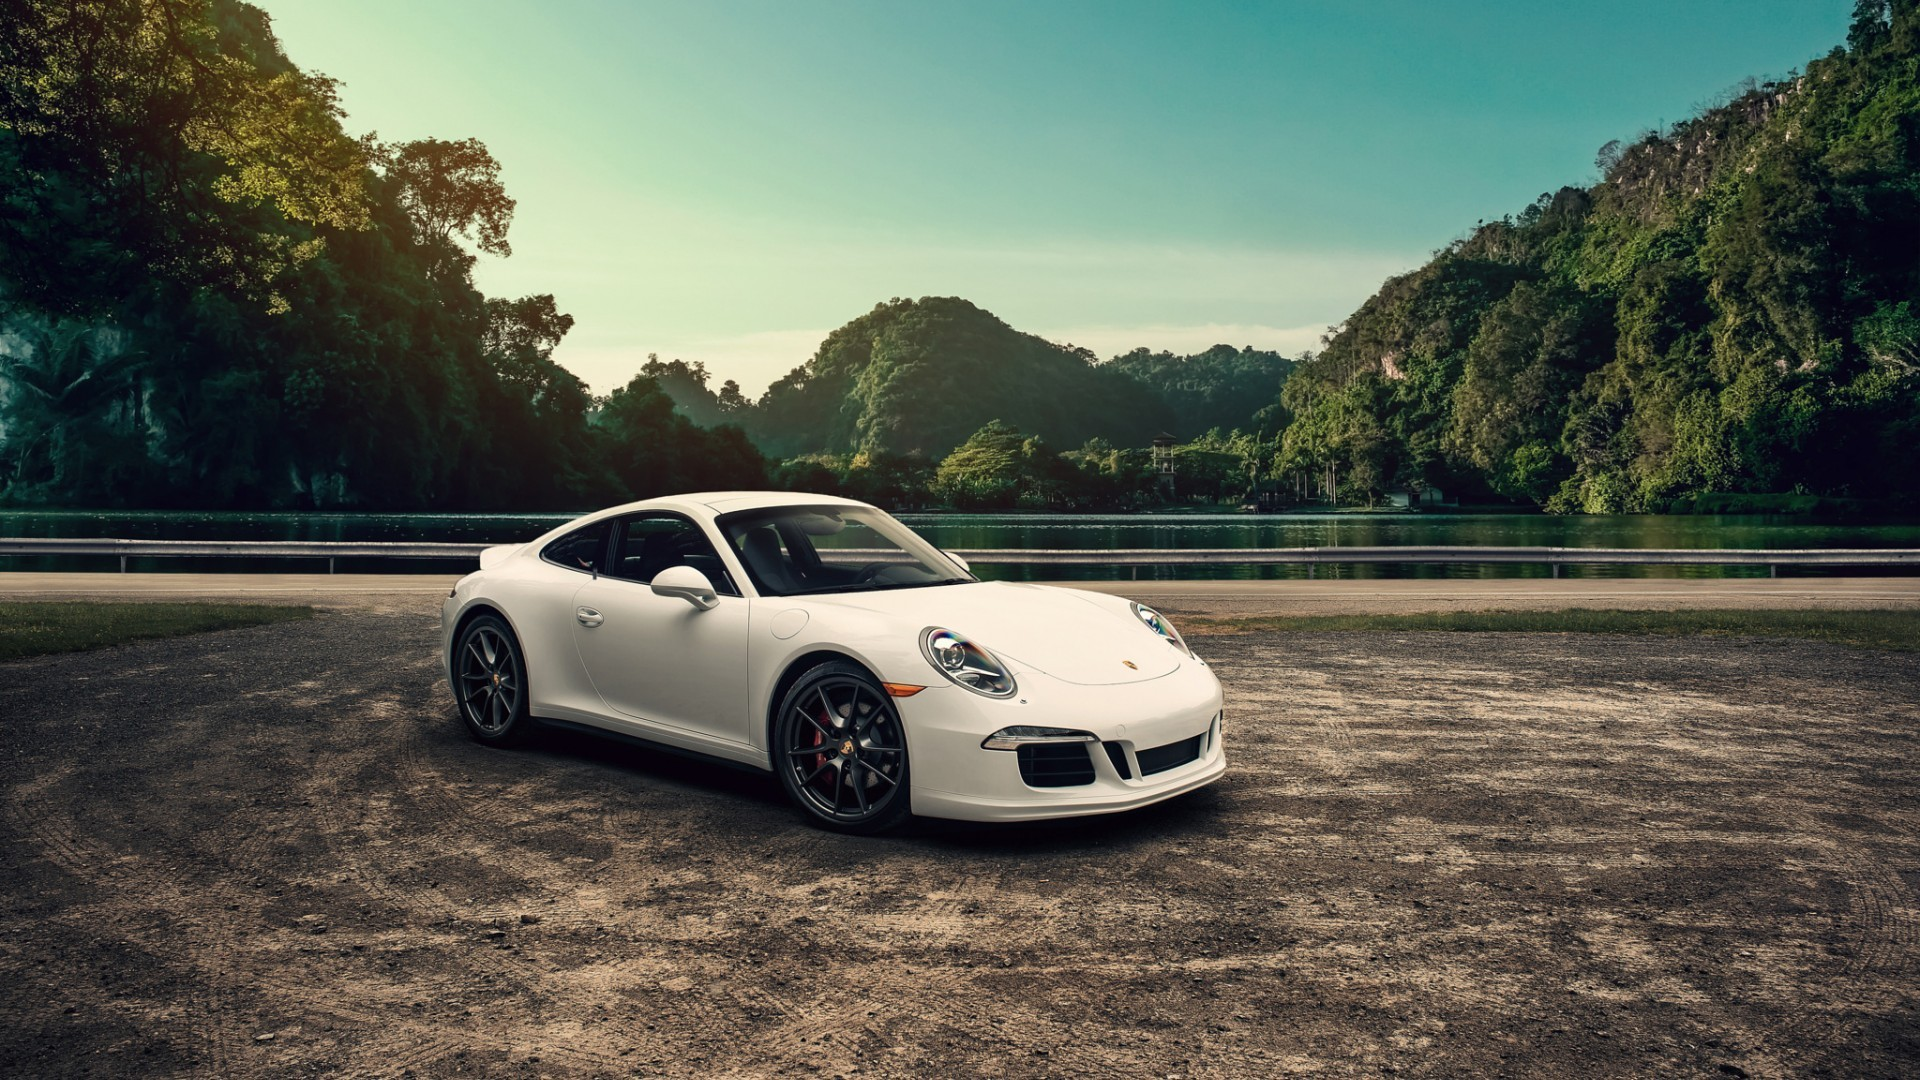 Porsche Hd Cars 4k Wallpapers Images Backgrounds